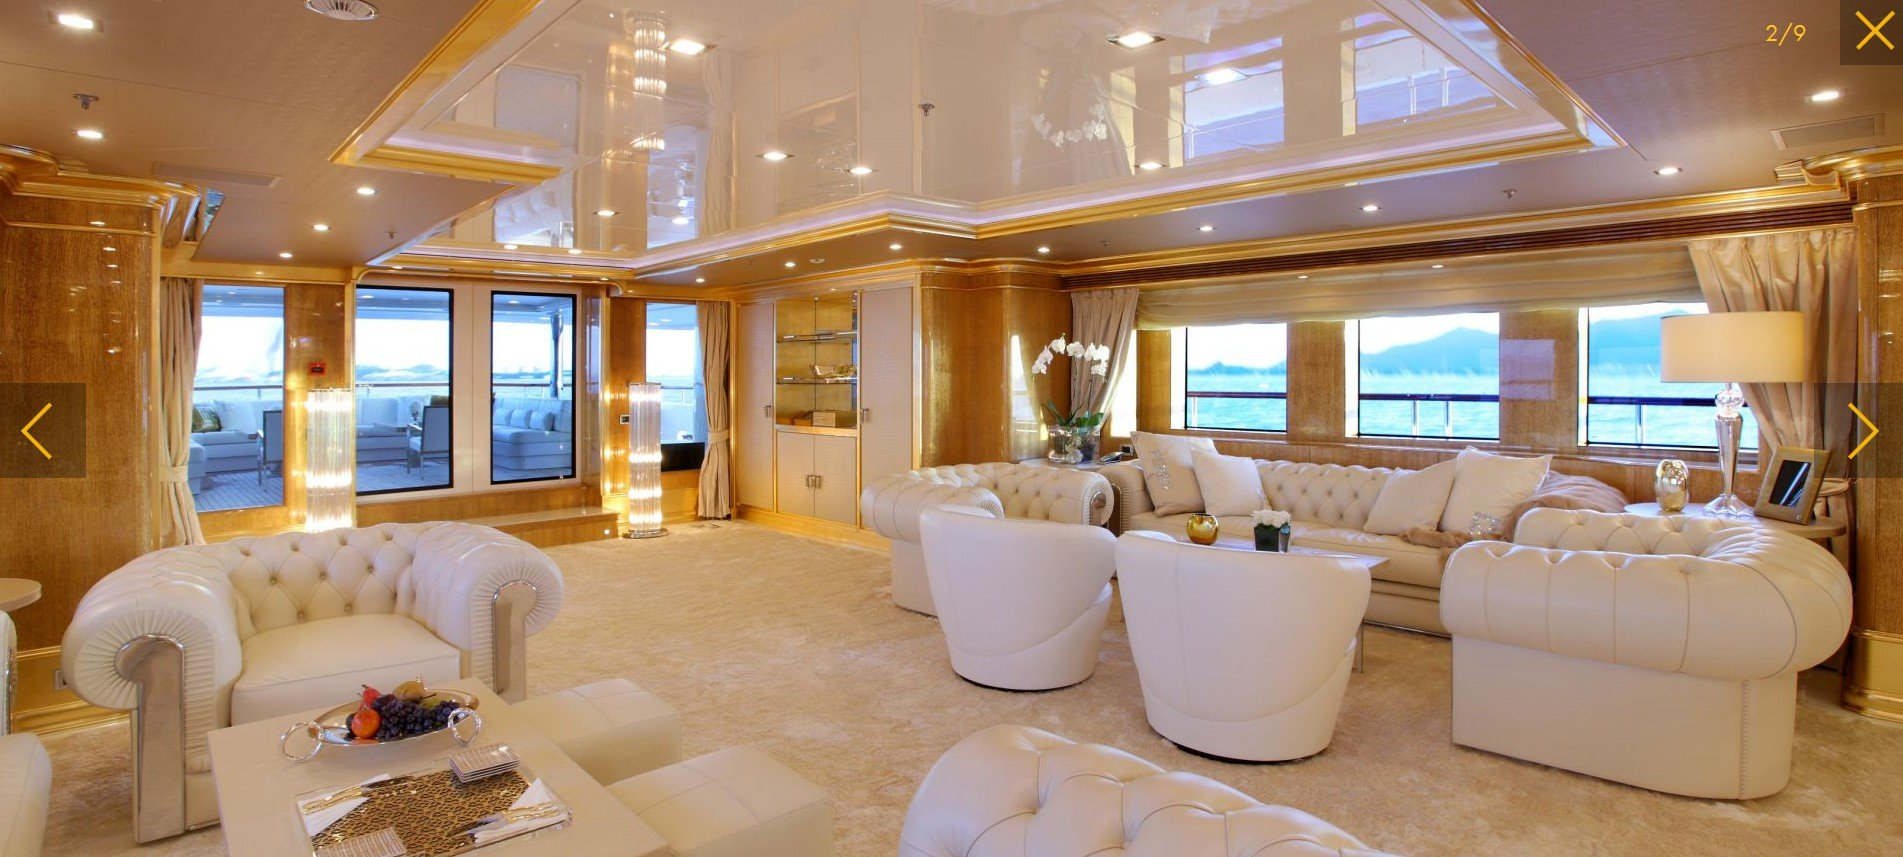 yacht Lady Lara interior